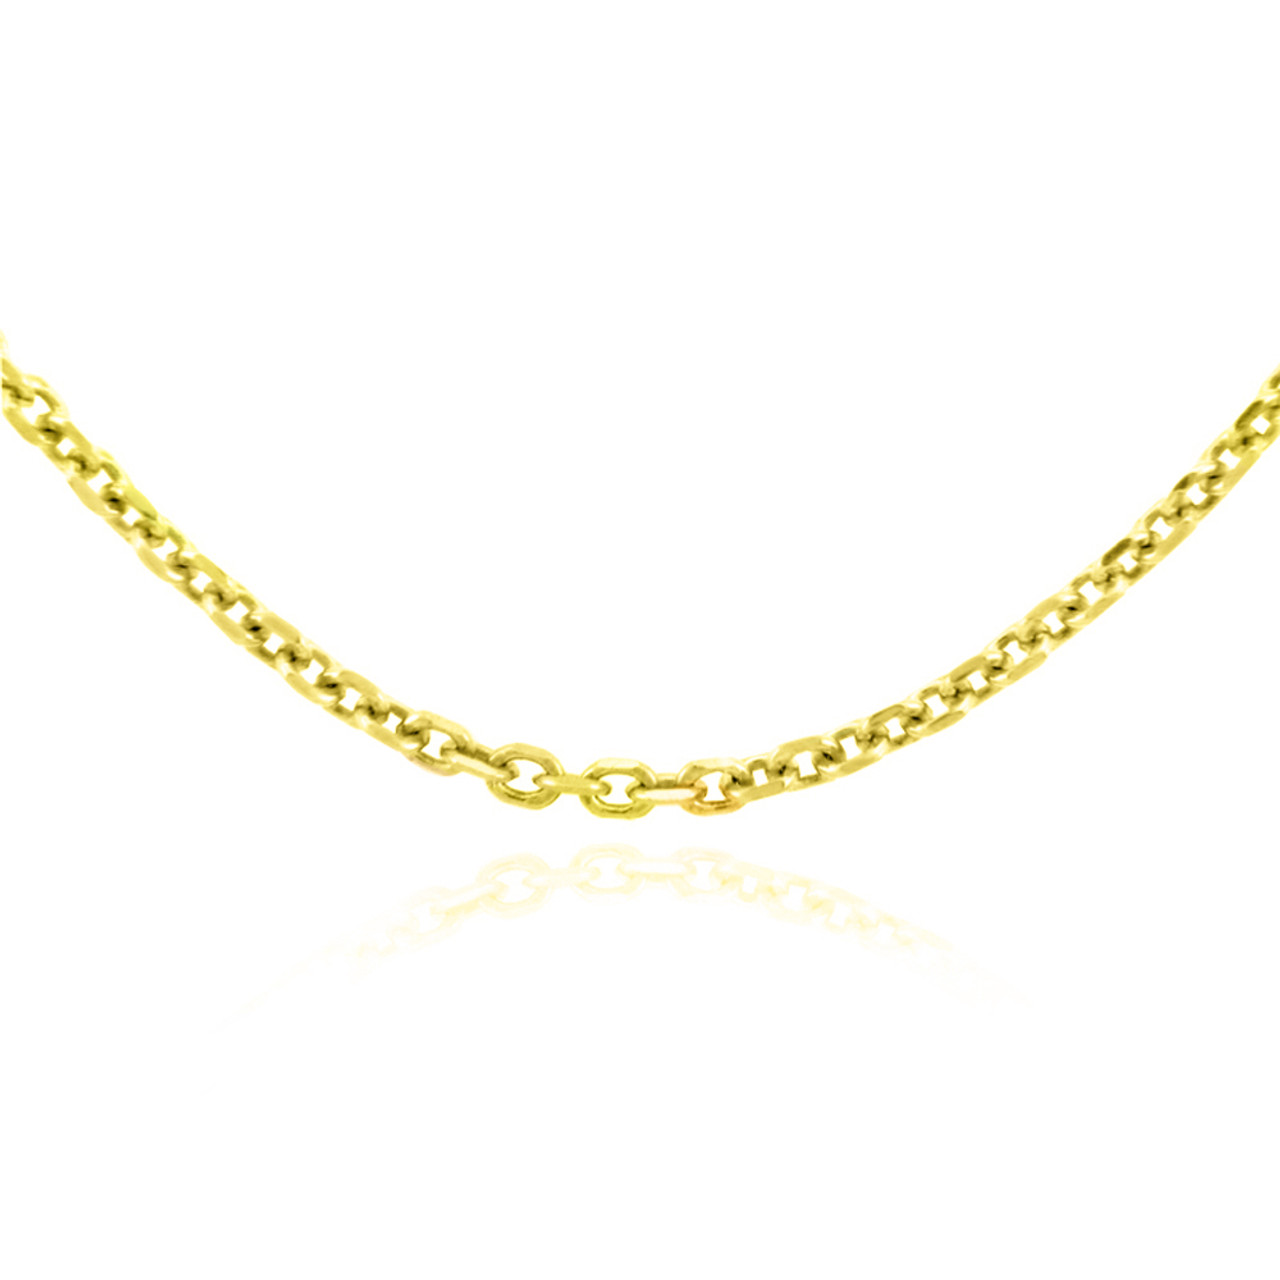 mens nck rolo necklace s inches chains real wheat solid gold mm yellow men chain